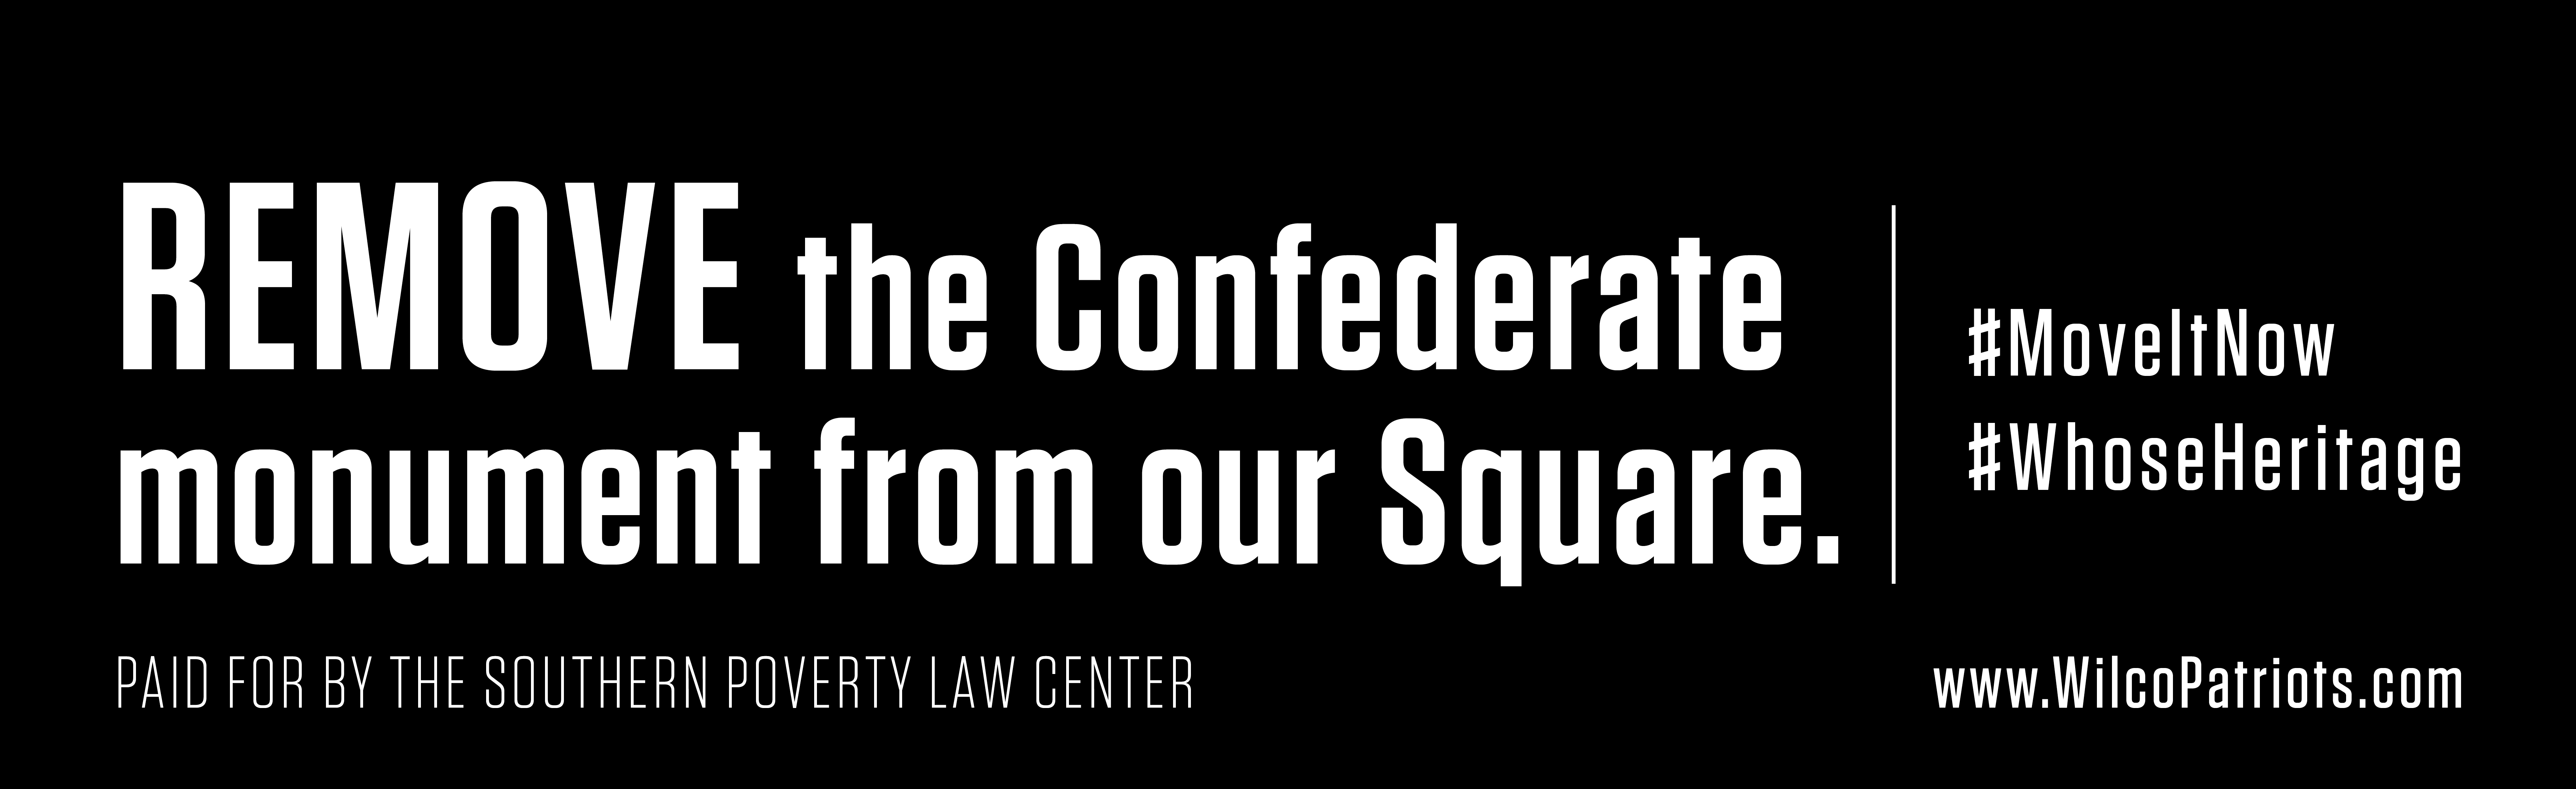 #MoveItNow: Billboard Tells Williamson County to Evict Confederate Monument